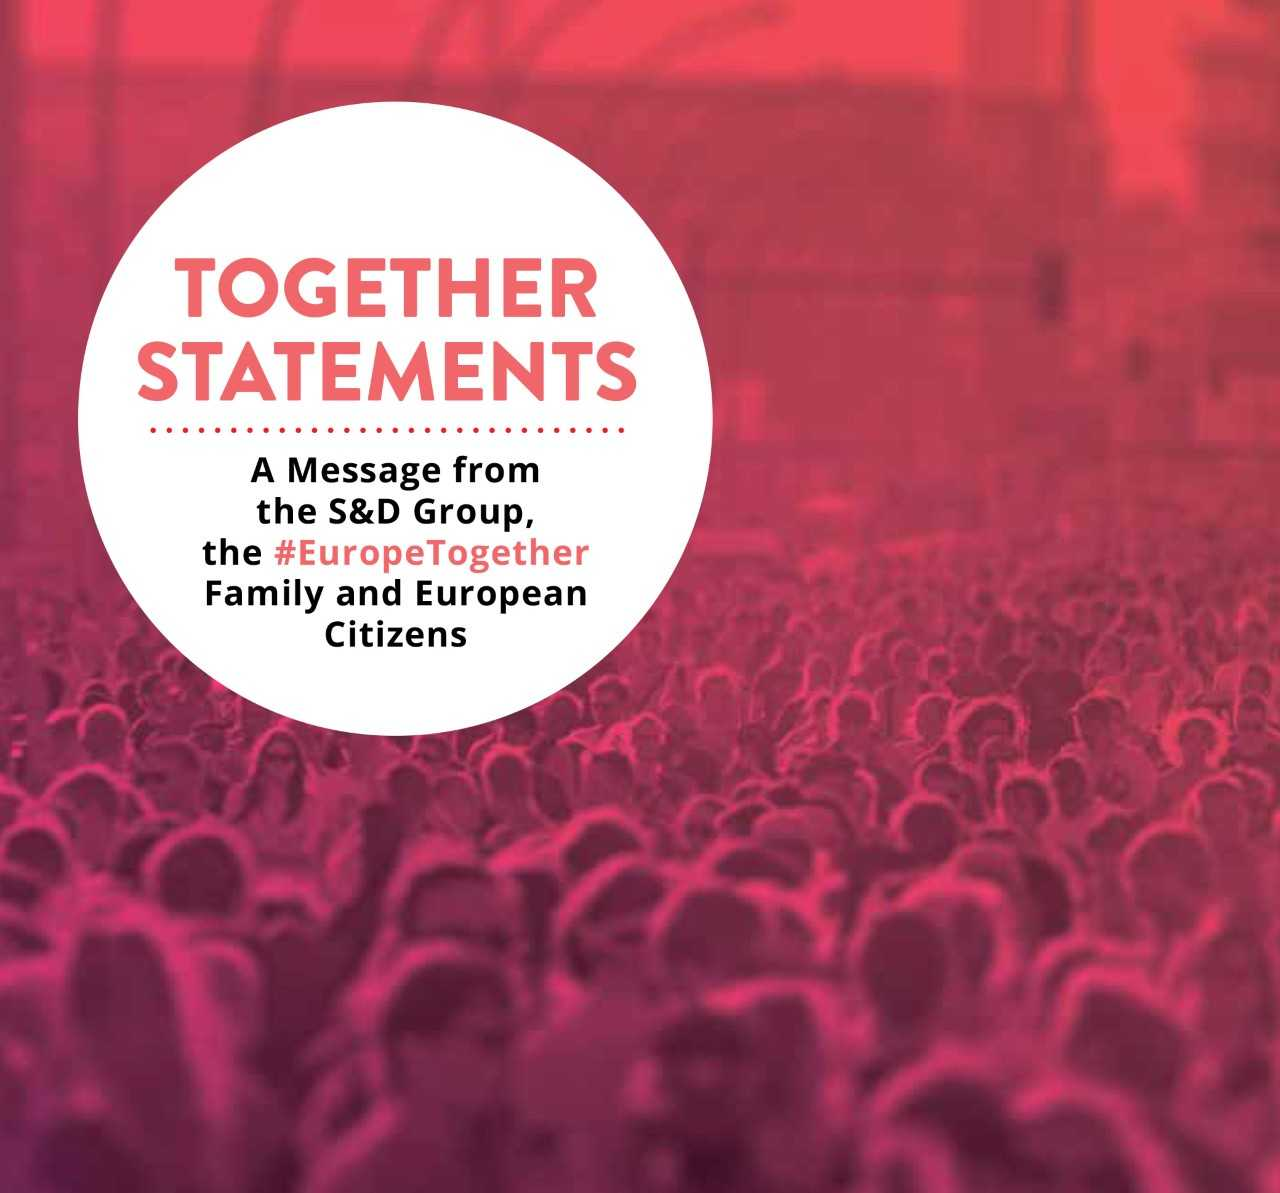 OUR JOURNEY #EUROPETOGETHER